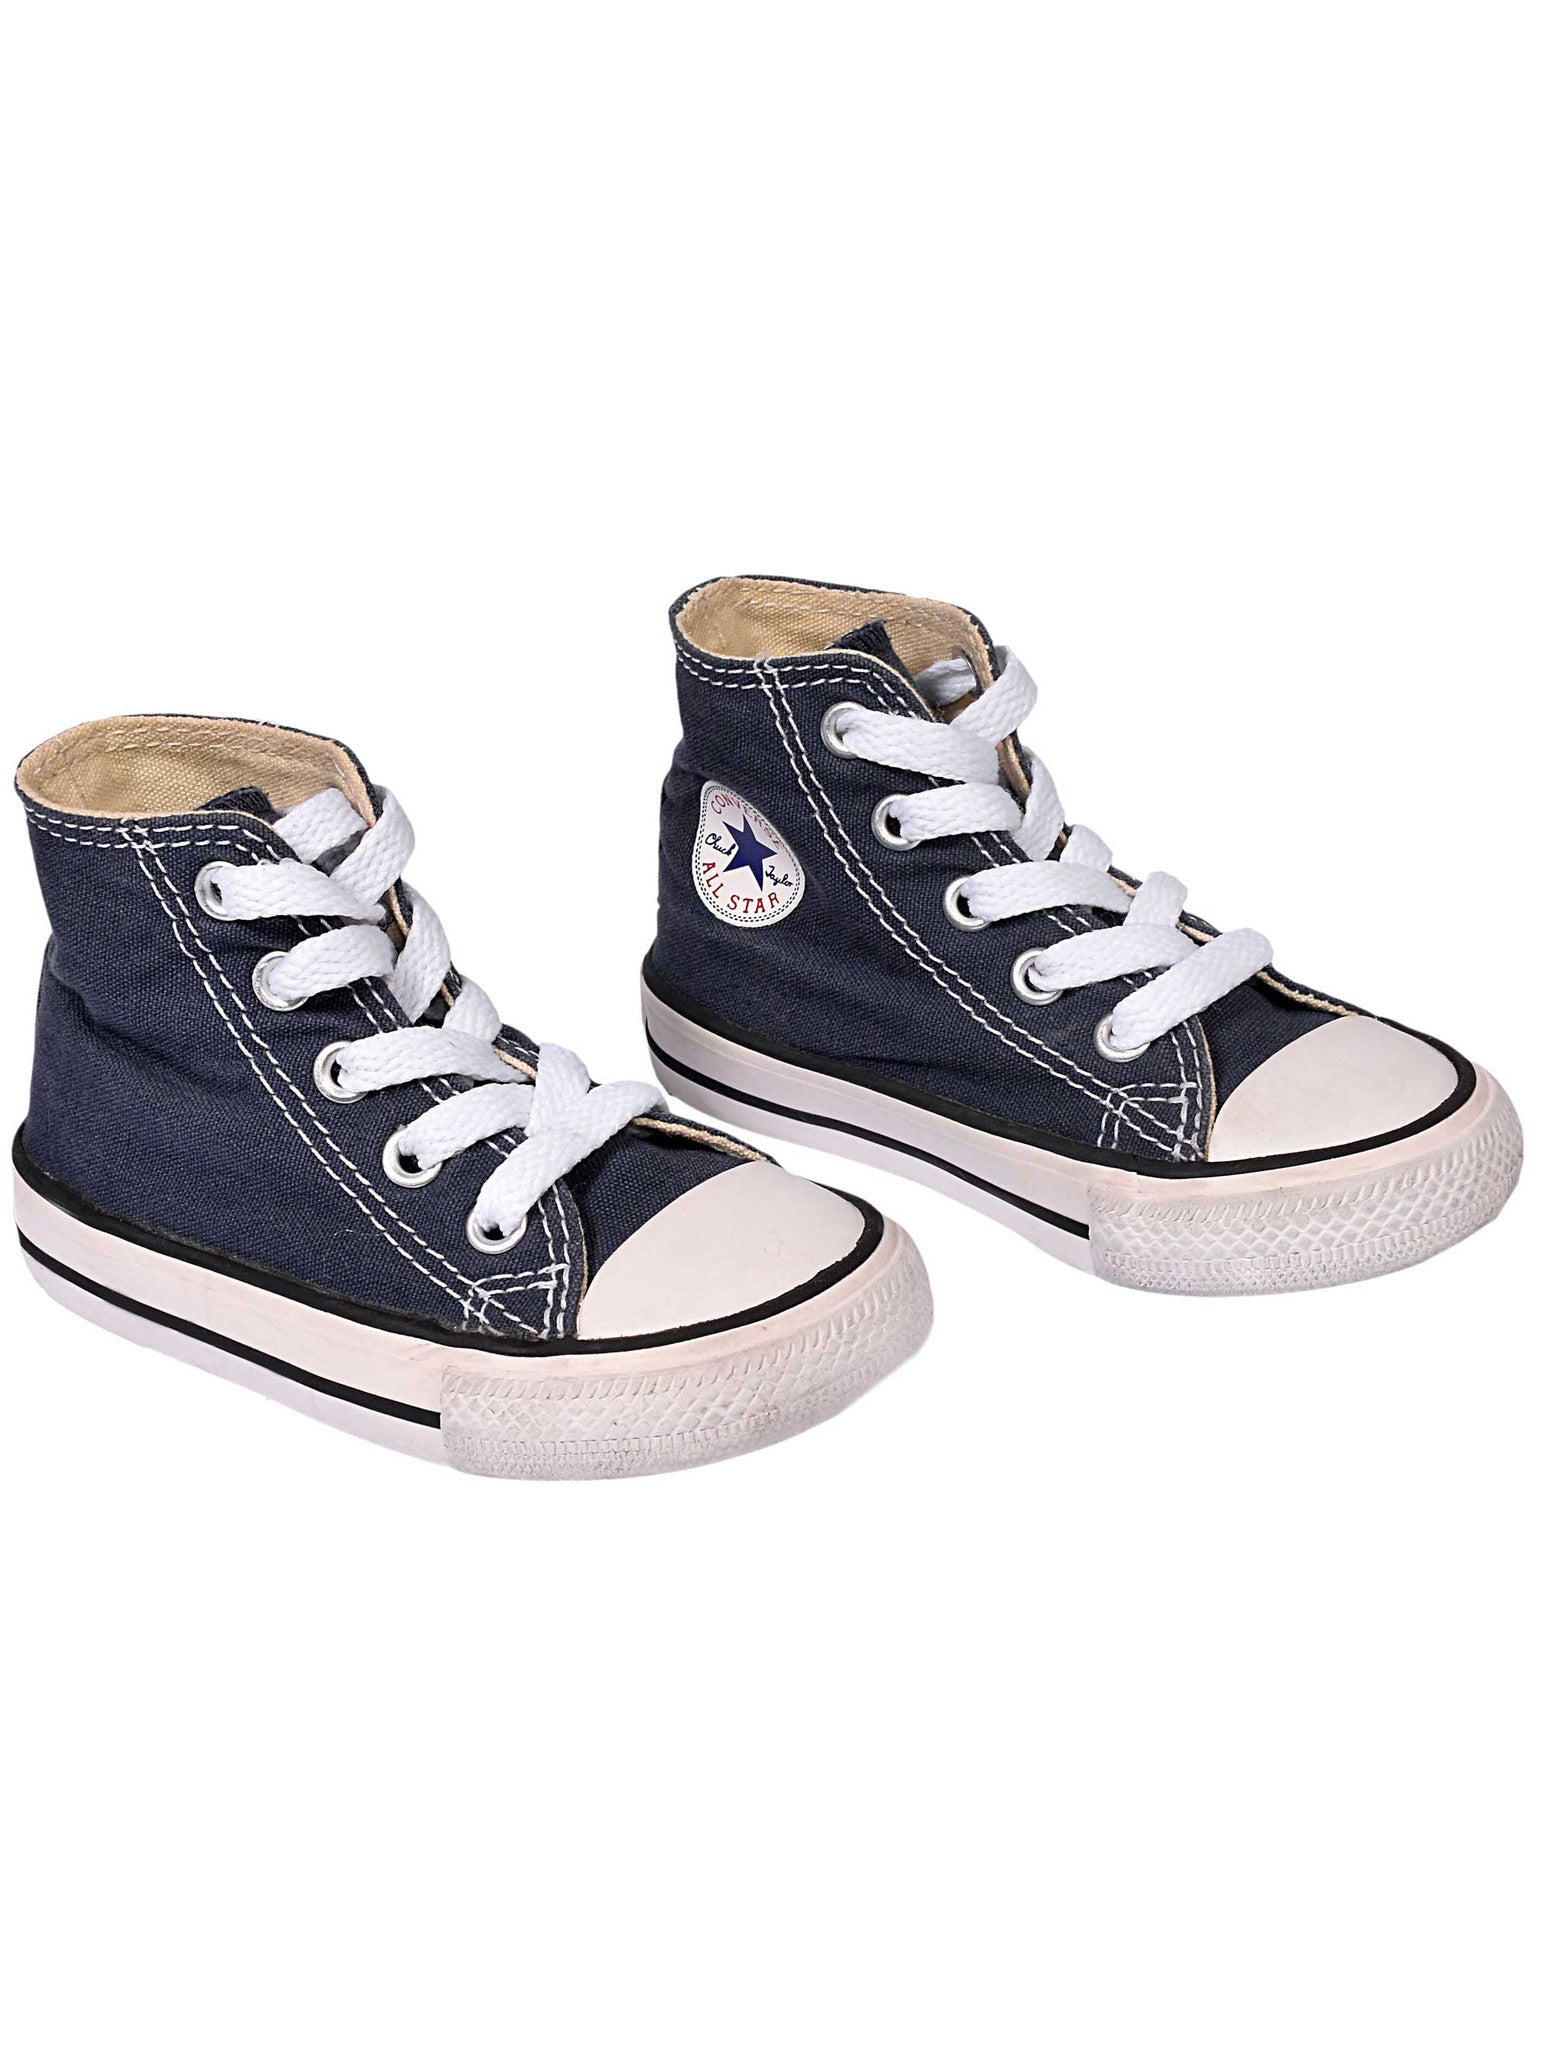 CHUCK TAYLOR SHOES - kidsstyleforless